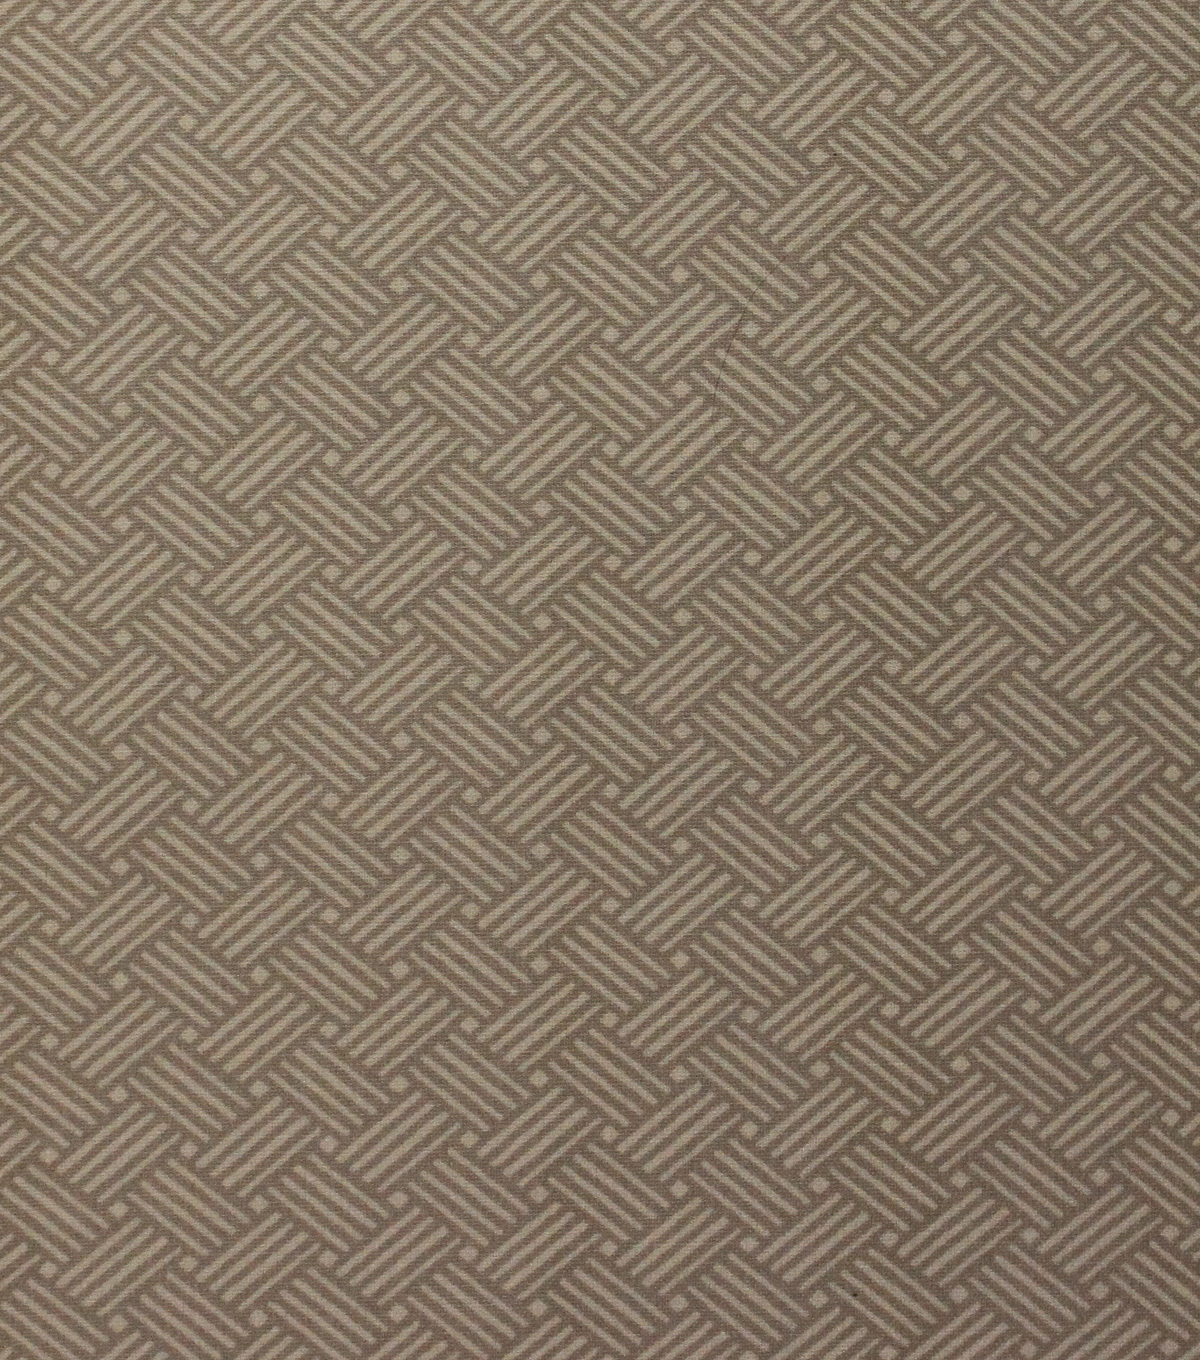 Outdoor Fabric-Solarium Graph Linen